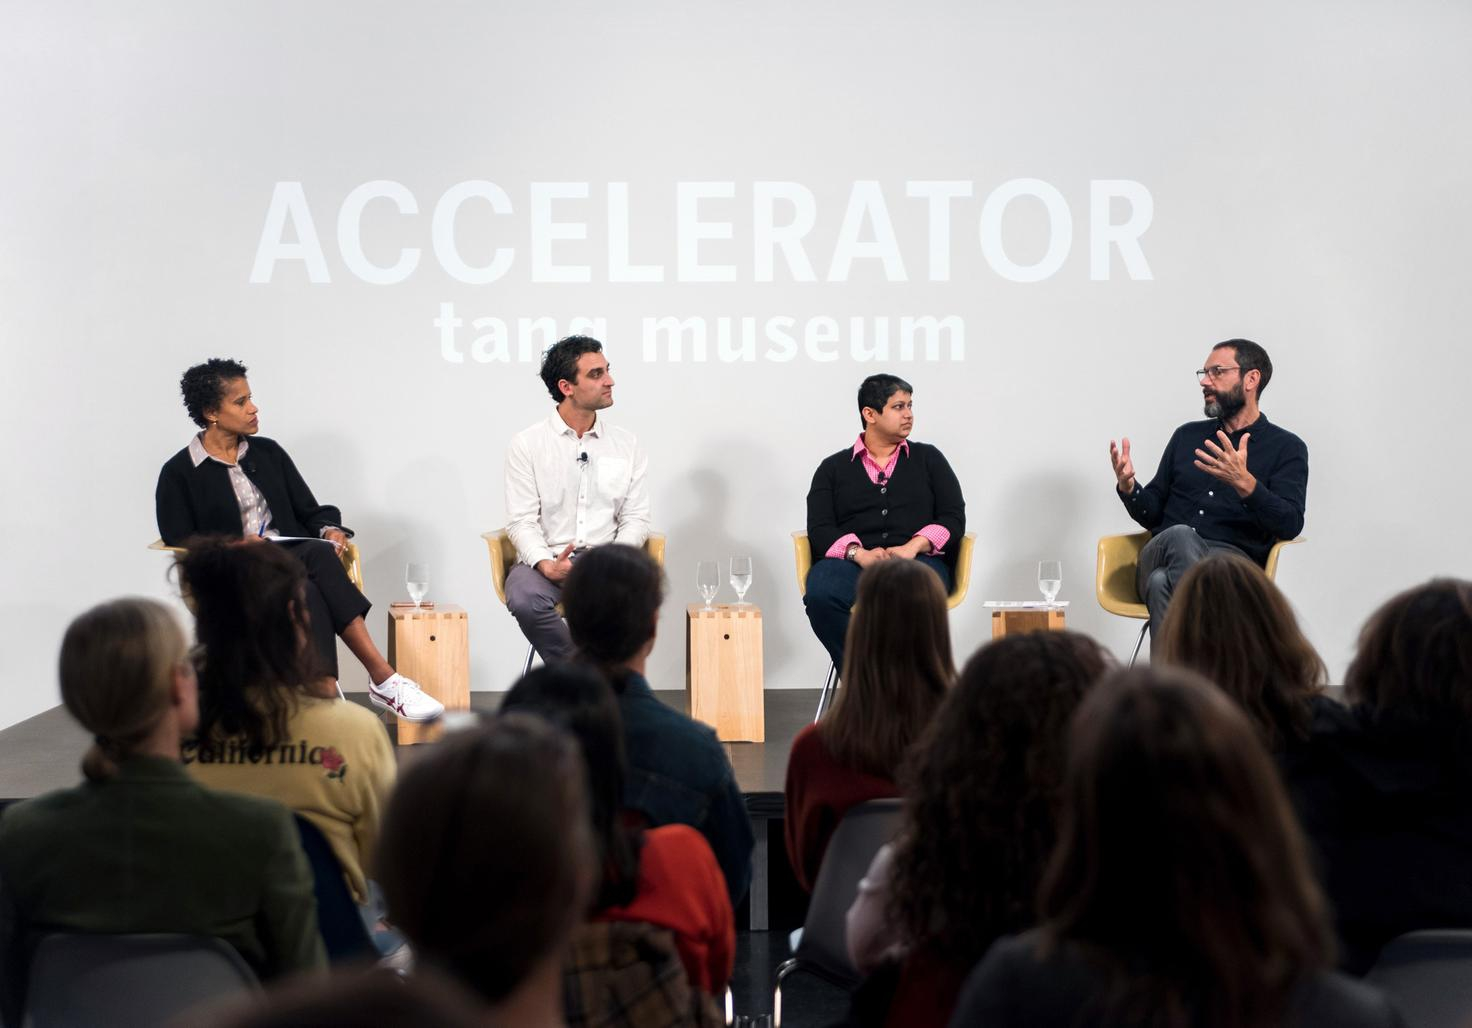 Accelerator Series: Get Up, Stand Up: Rights and Responsibilities of Citizenship